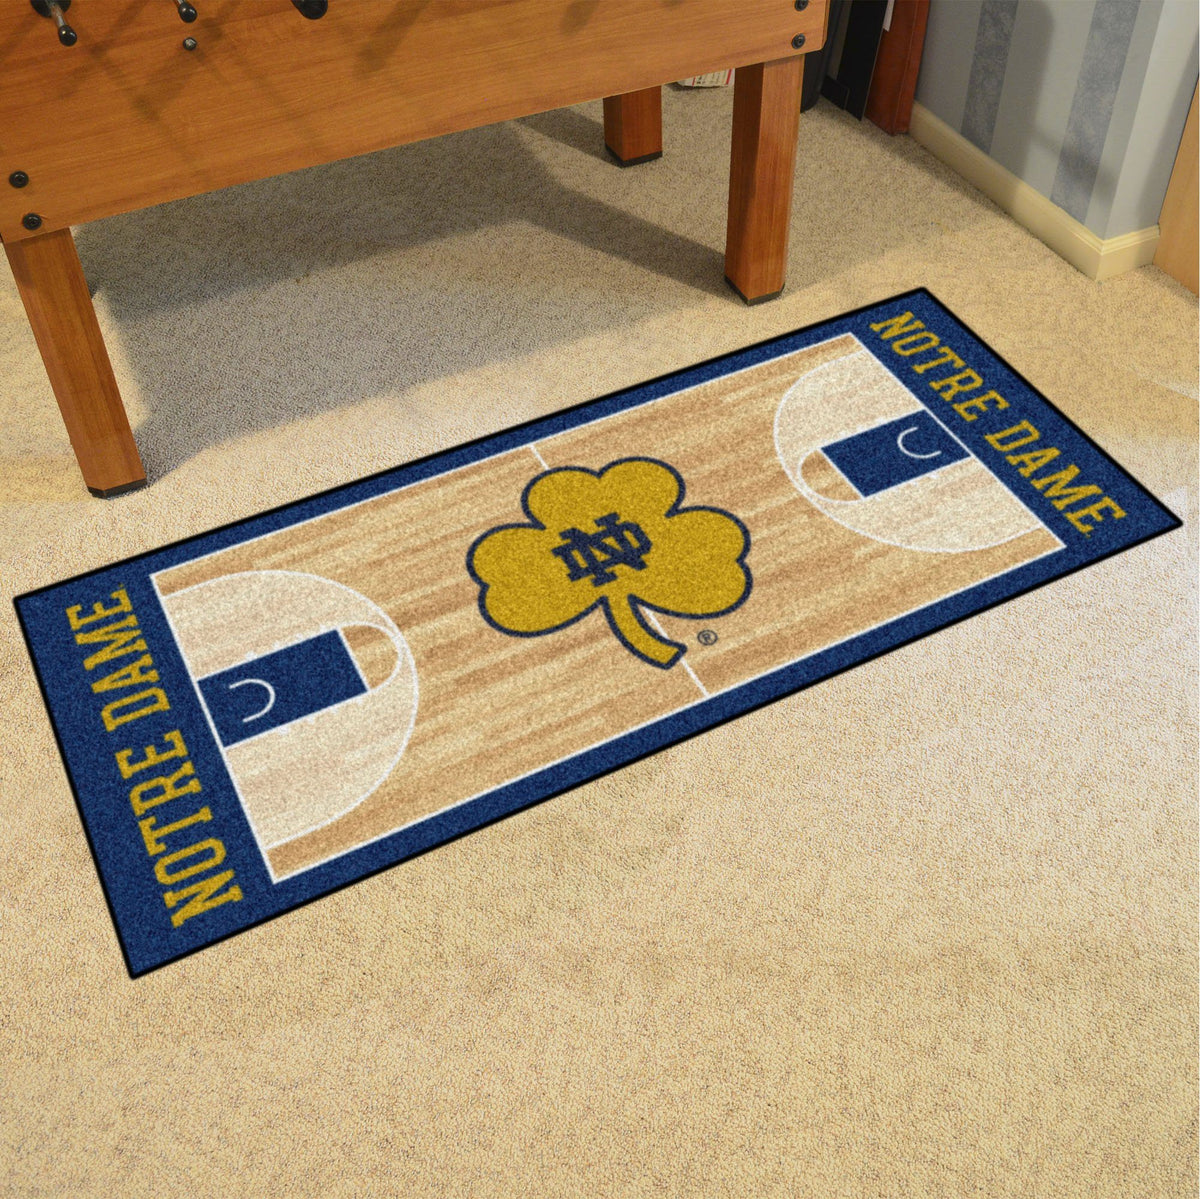 Collegiate - NCAA Basketball Runner Collegiate Mats, Rectangular Mats, NCAA Basketball Runner, Collegiate, Home Fan Mats Notre Dame